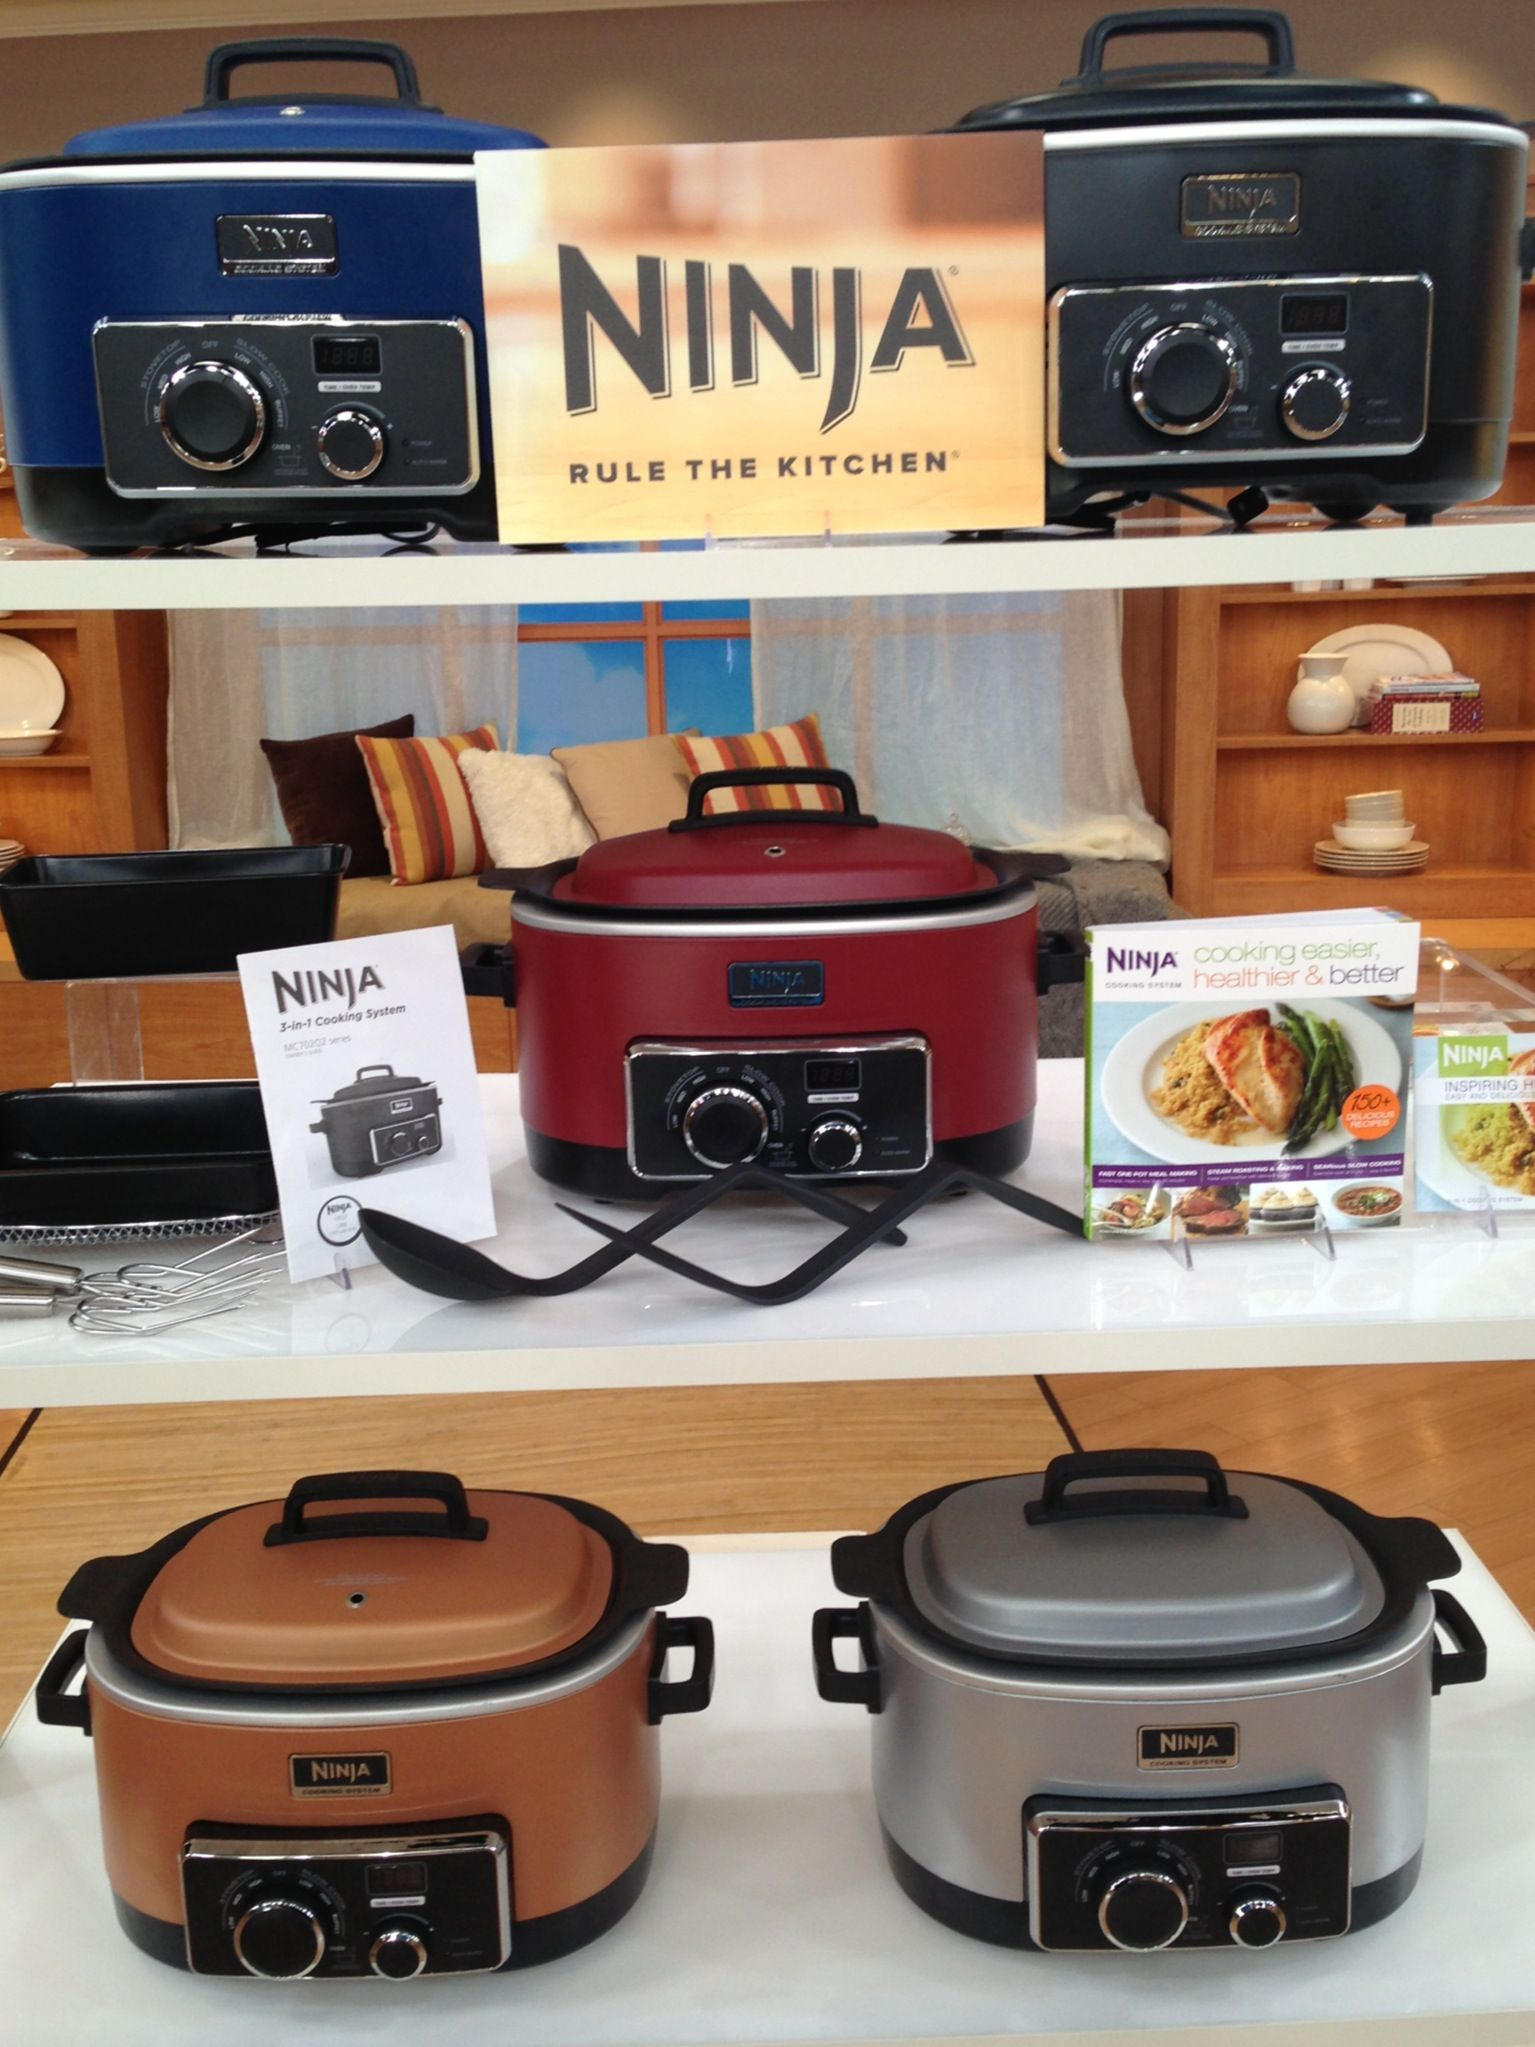 Ninja 3-in-1 6 qt. Nonstick Cooking System with Cookbook ...